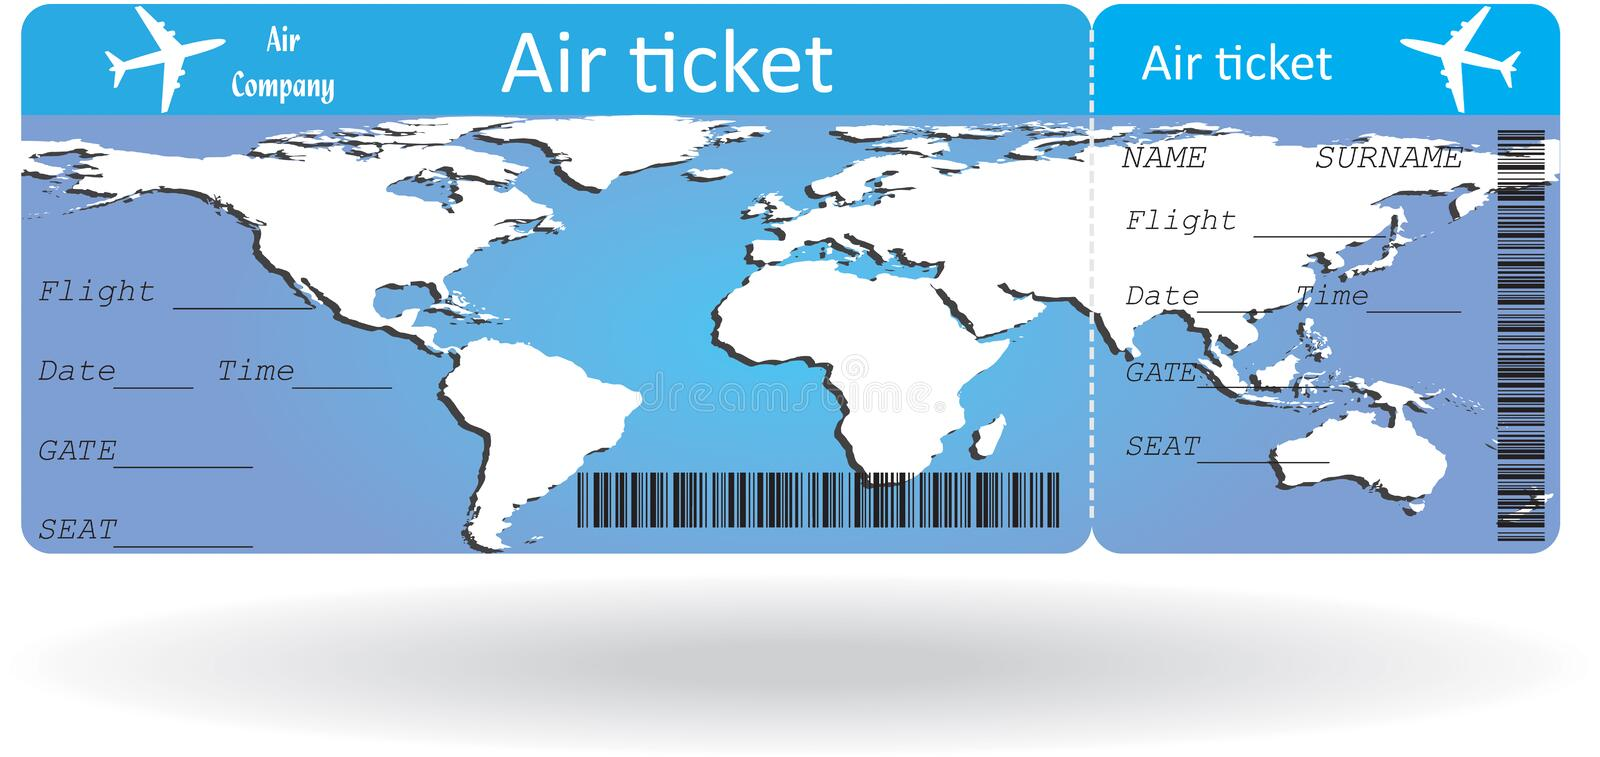 Variant Of Air Ticket Stock Vector Illustration Of Journey